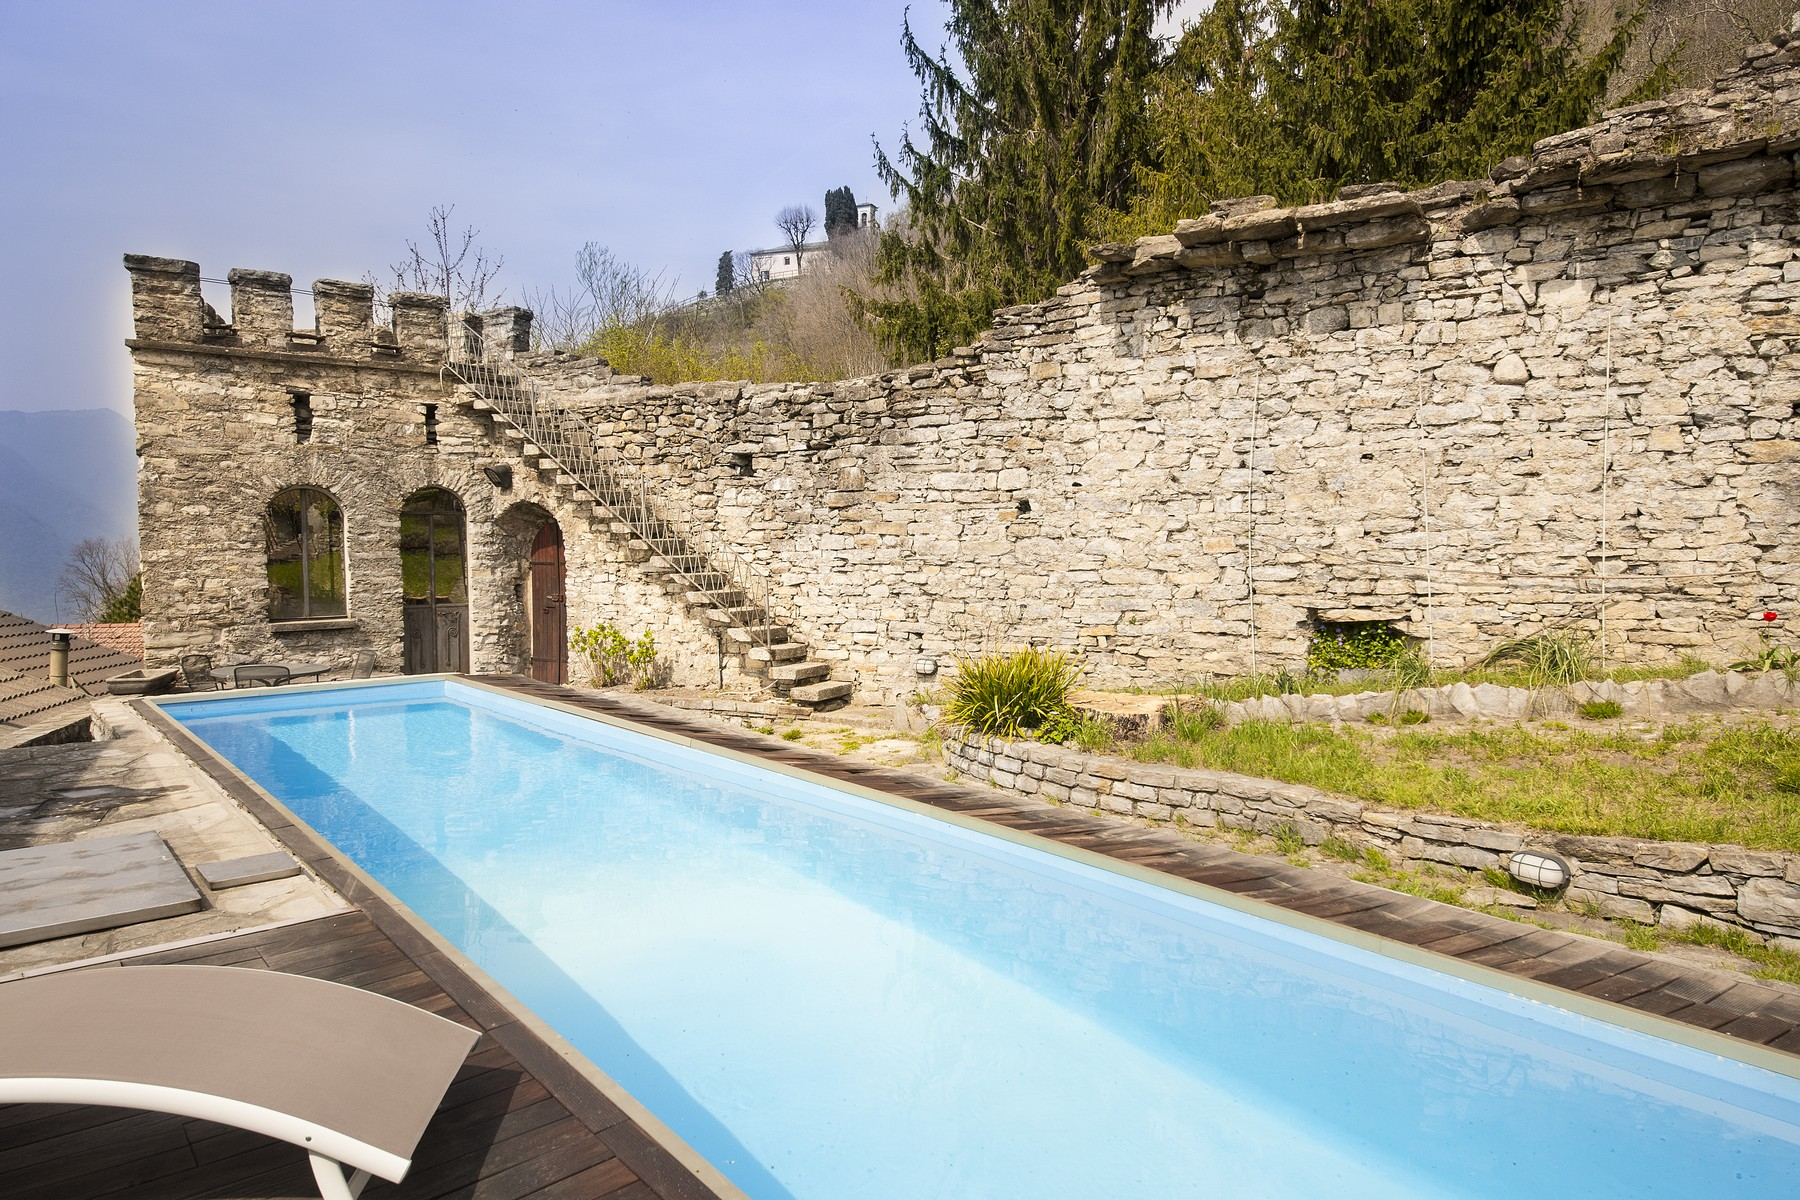 Single Family Home for Sale at Ancient Castle of Palanzo Via Monte Palanzone Faggeto Lario, 22020 Italy